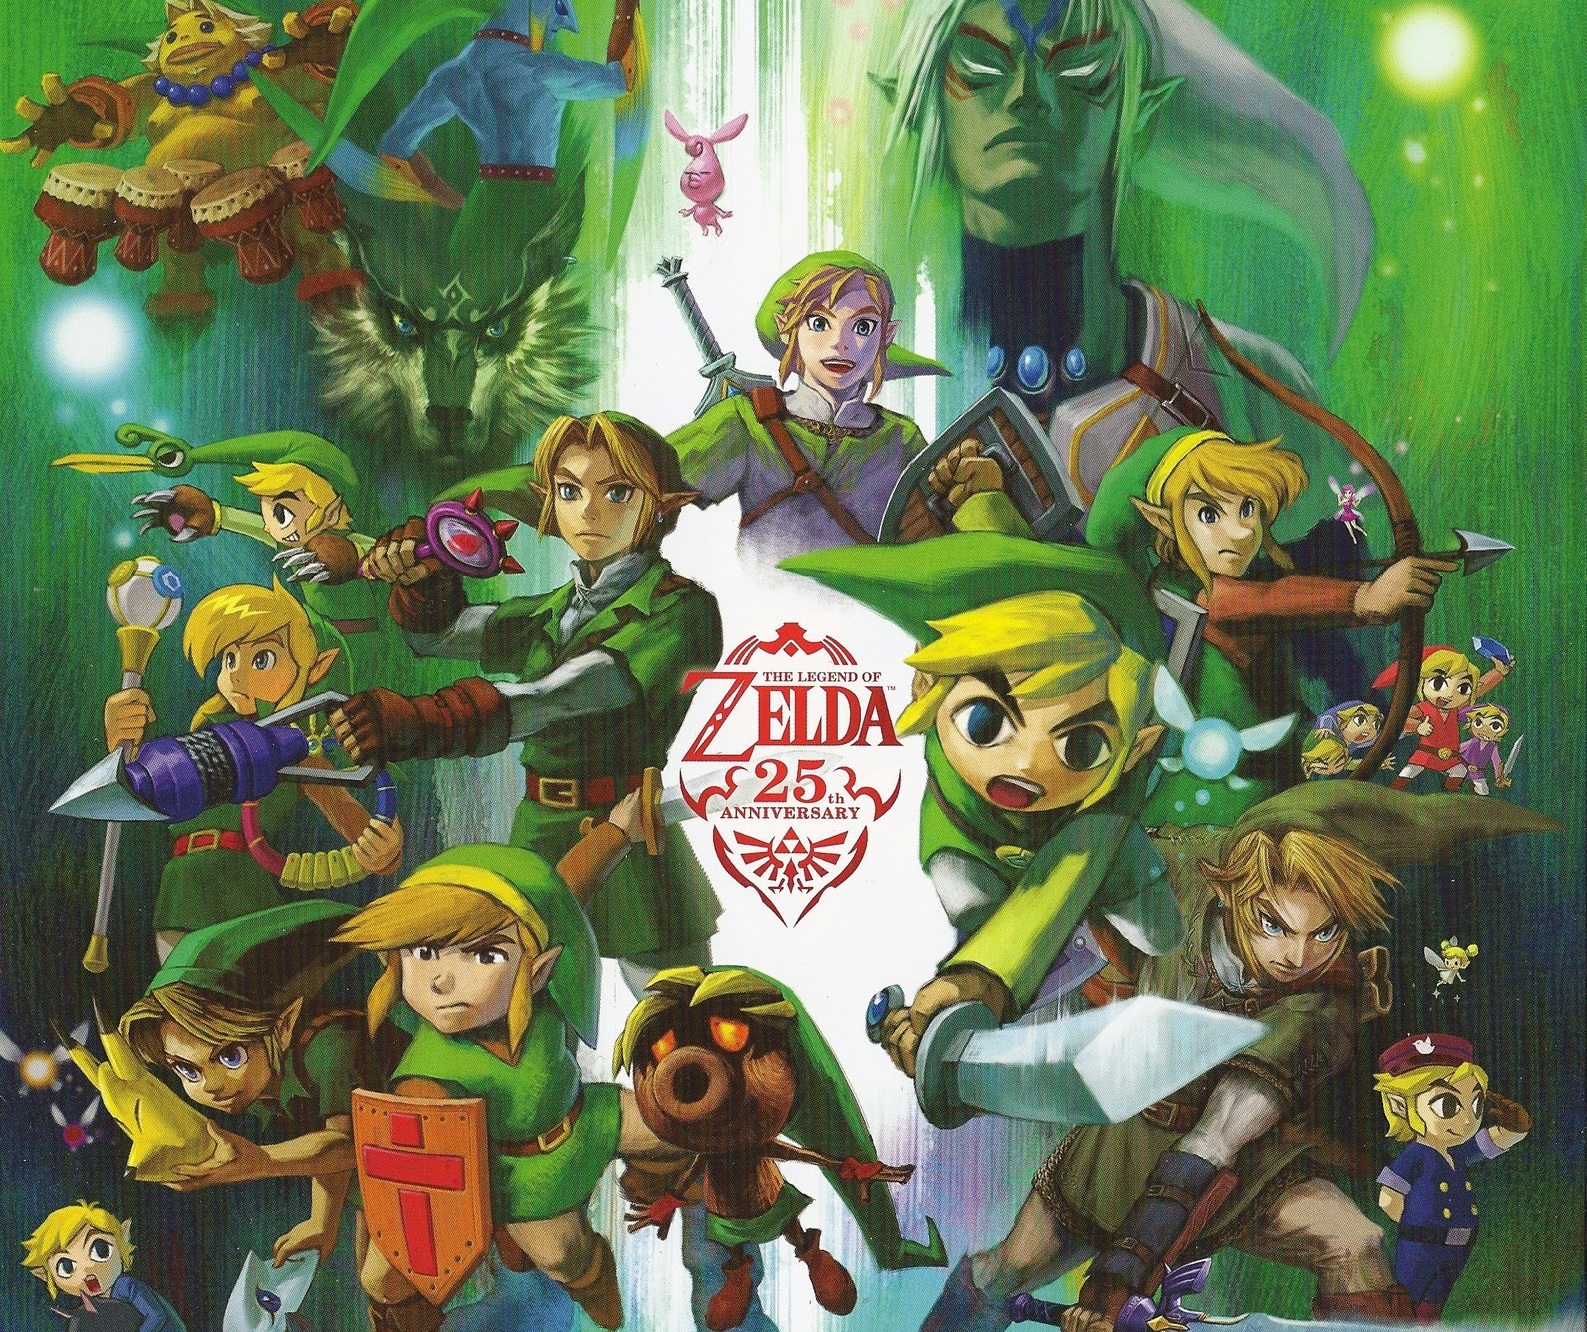 Is link the same link in every legend of zelda game? - Answers